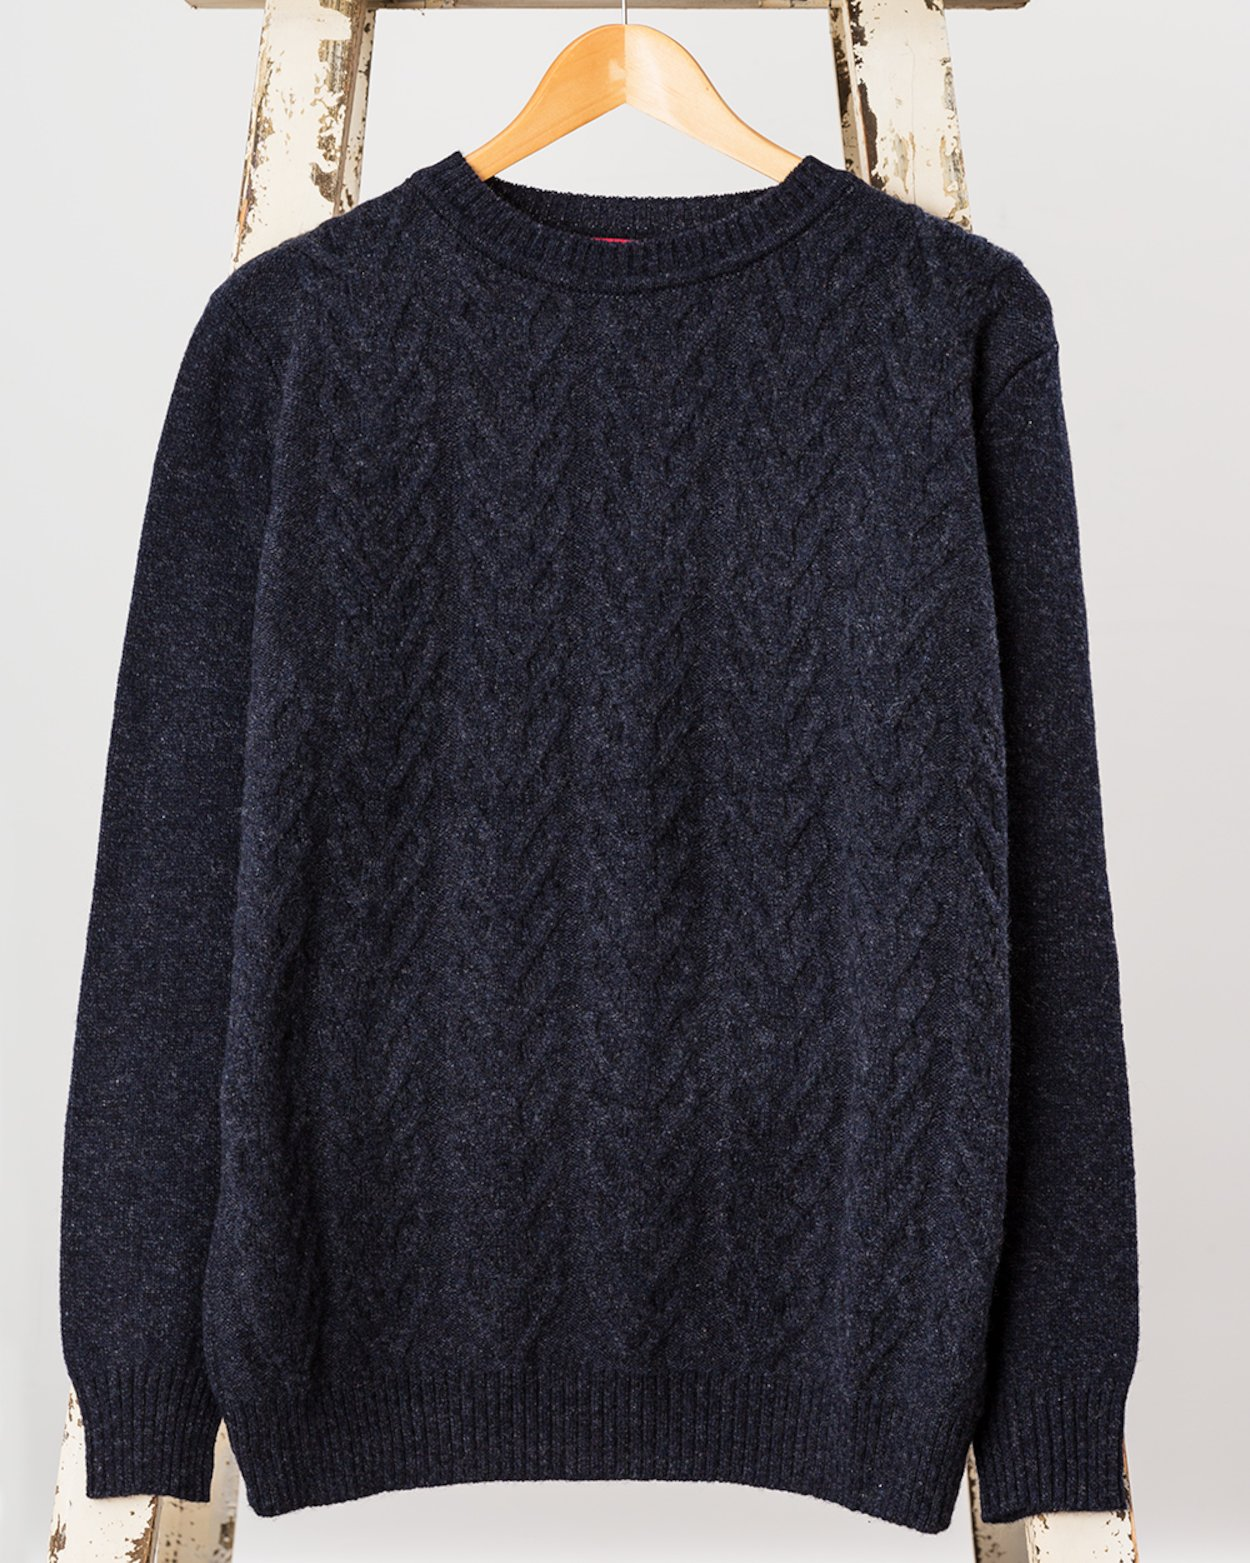 Fisherman Cable Knit Sweater - Mens Clothing | Avoca ®